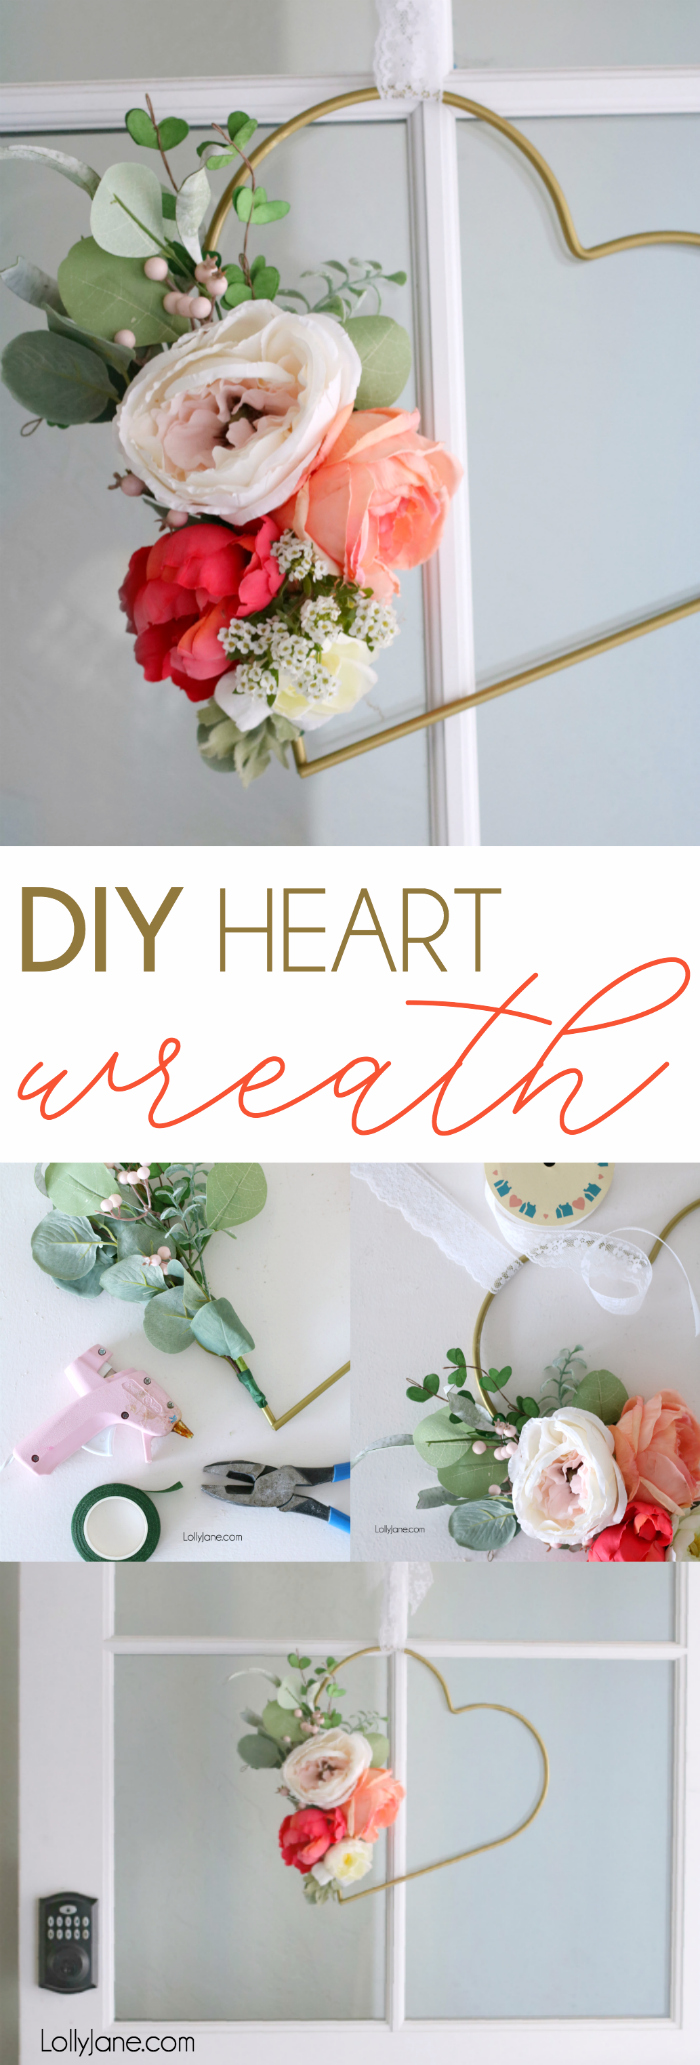 Pretty and EASY Metal Heart Floral Wreath. Hang at a baby shower, girls room, to spruce up a feminine space or to decorate for Valentine's Day! #diy #valentinesday #heartwreath